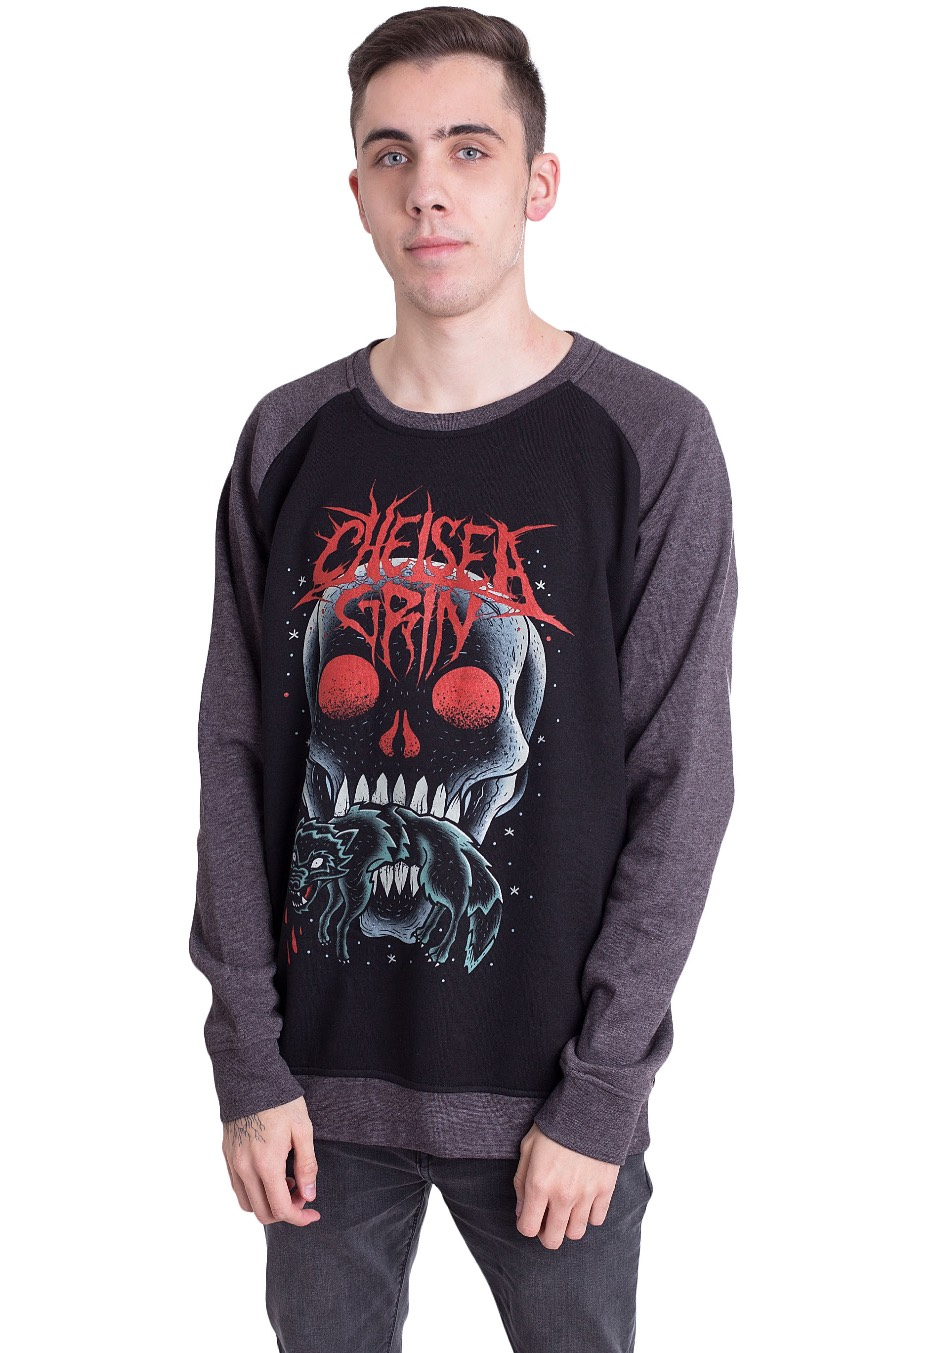 chelsea grin skull bite black charcoal sweater official deathcore merchandise impericon. Black Bedroom Furniture Sets. Home Design Ideas